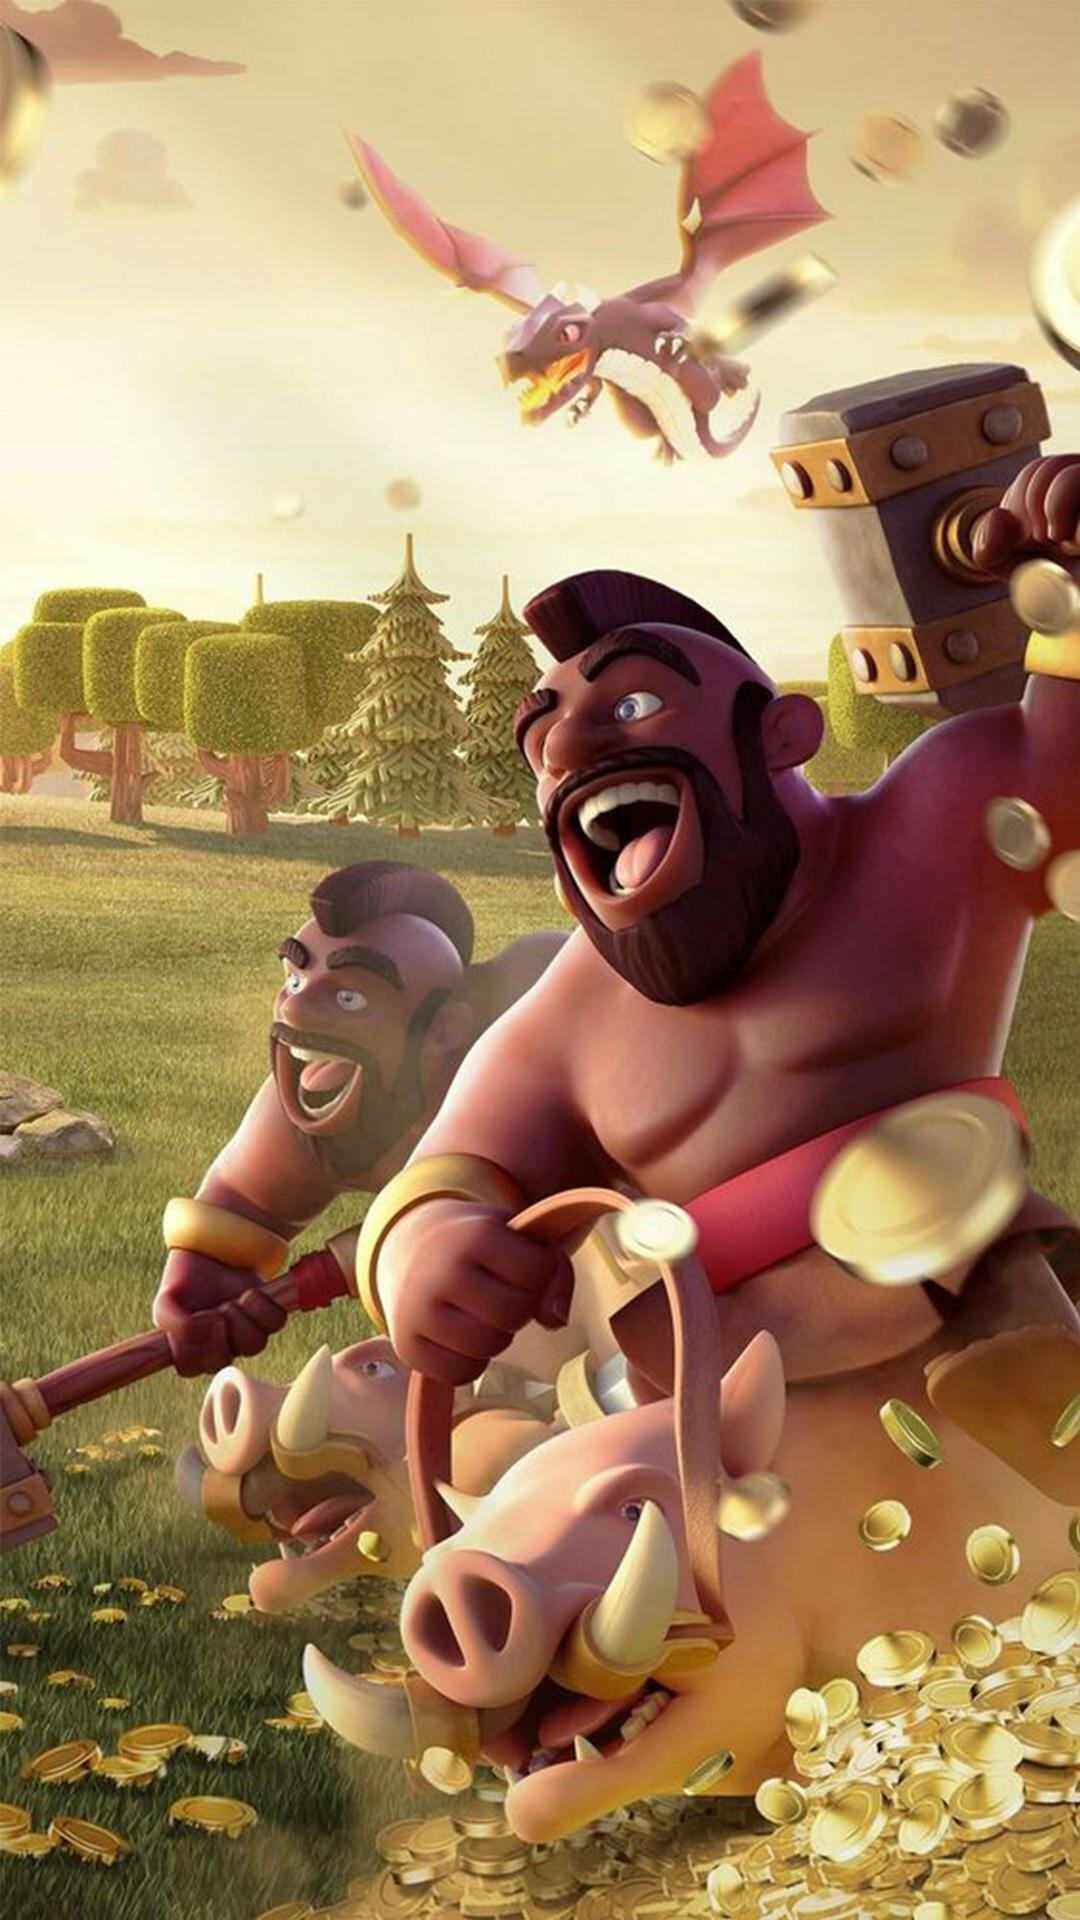 Supercell Wallpapers For Android APK Download